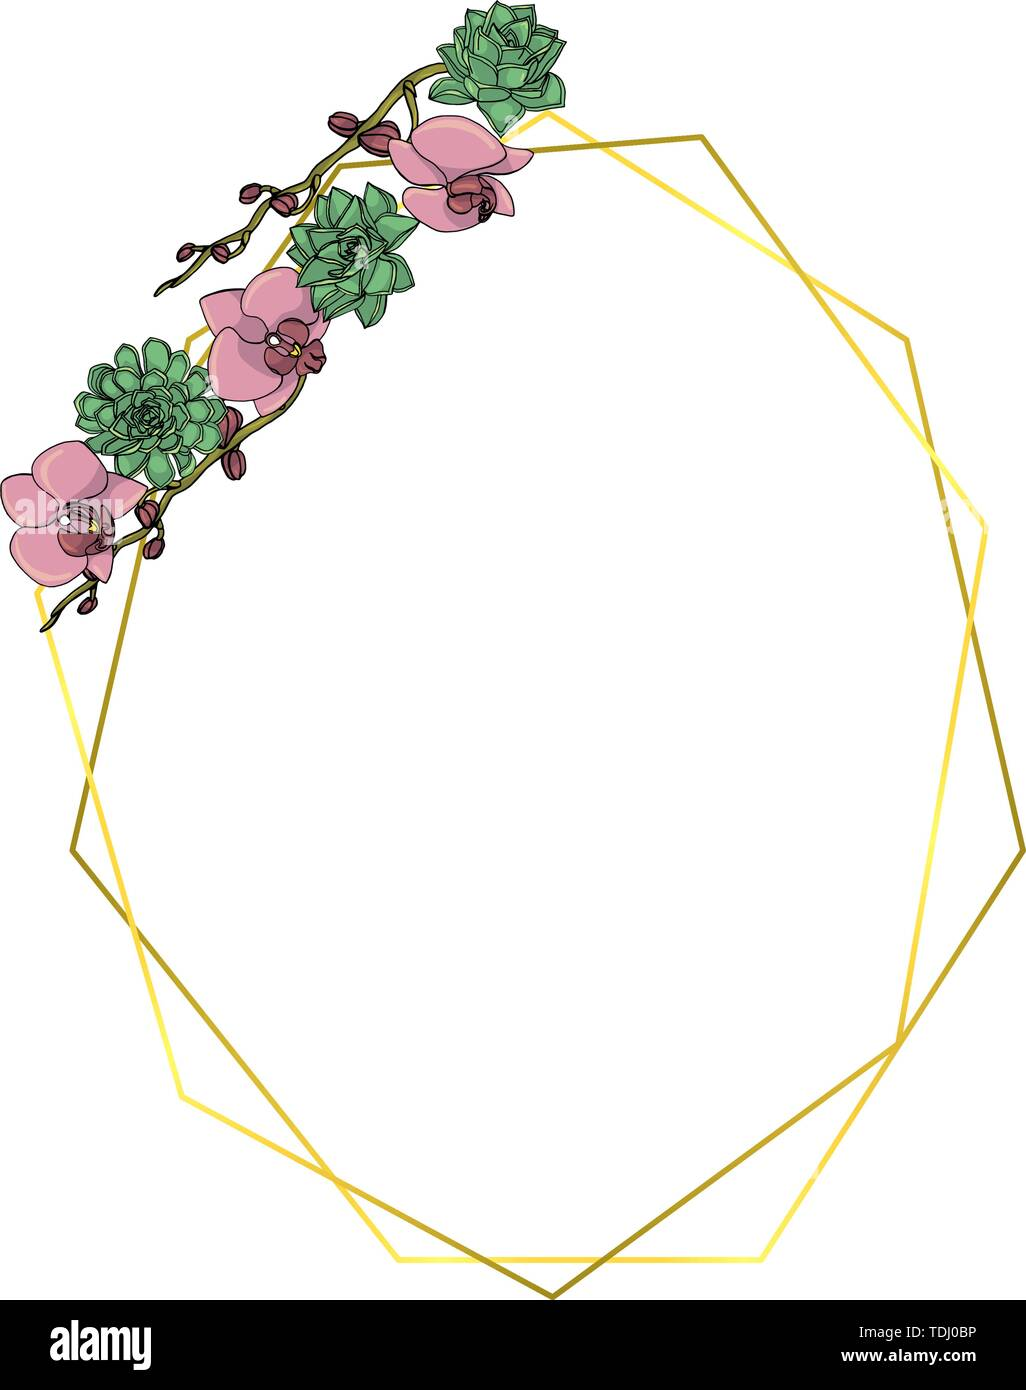 Hand Drawn Doodle Style Succulent And Orchid Flower Wreath With